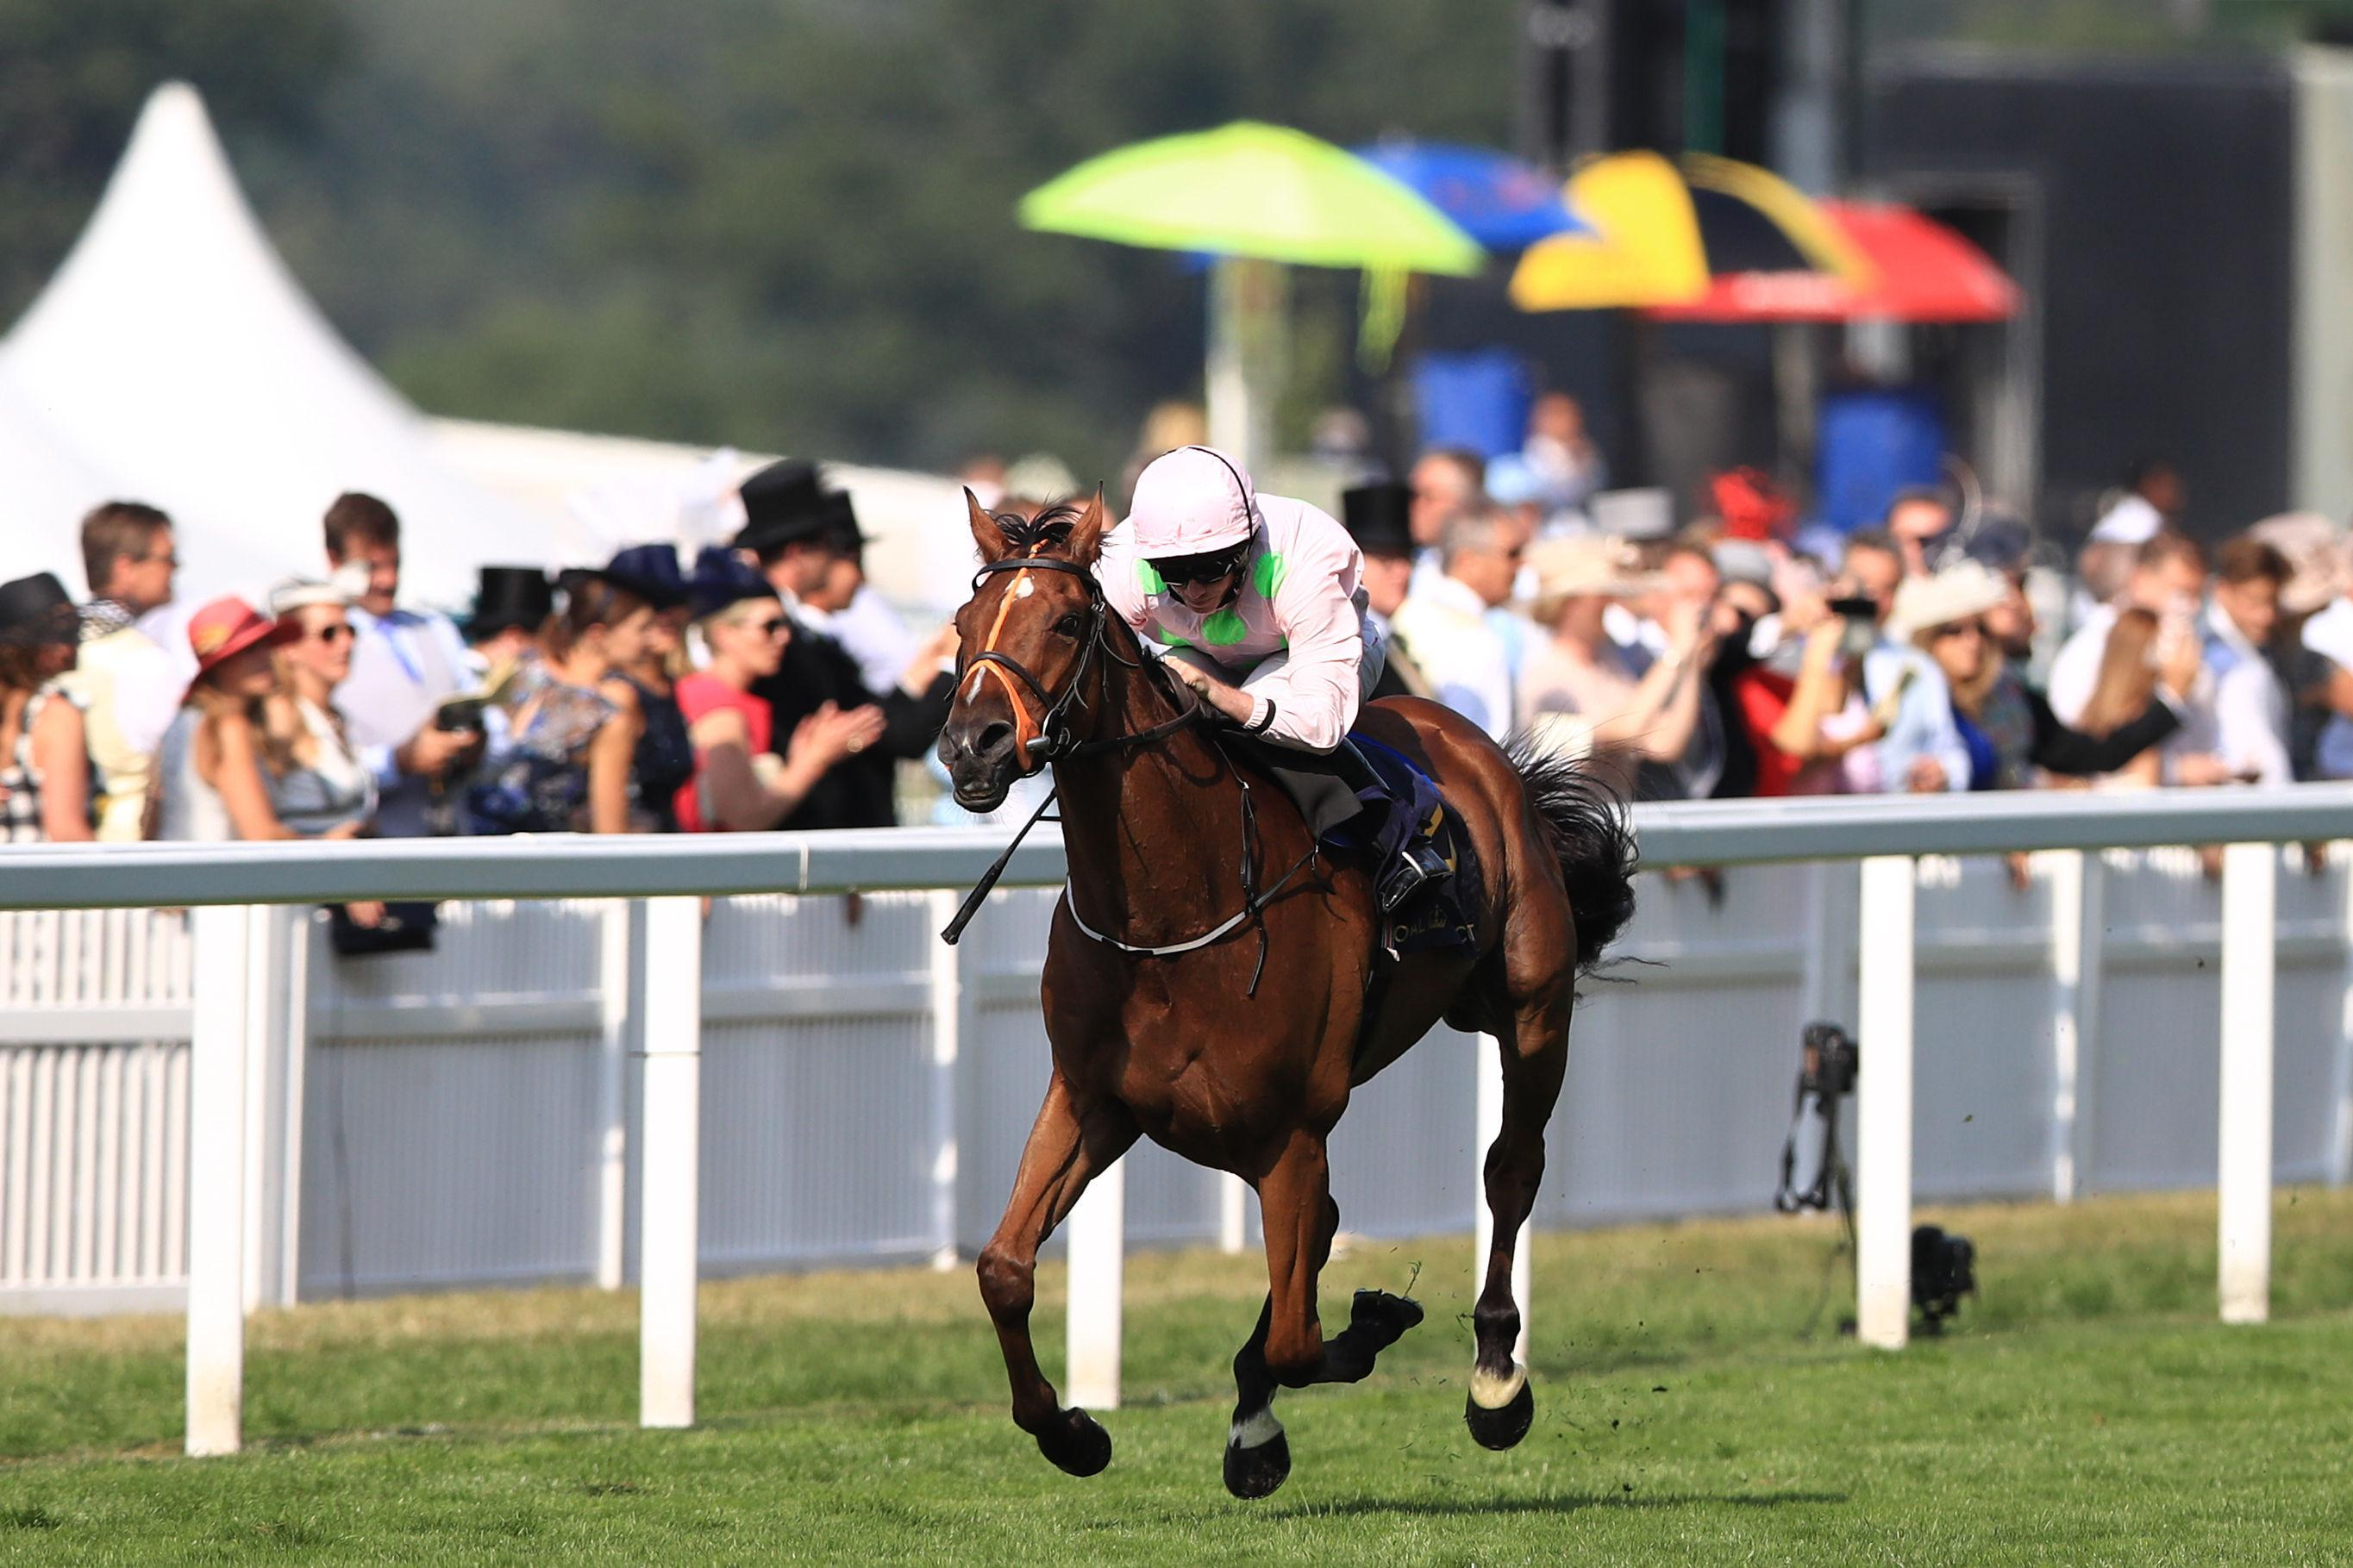 Thomas Hobson went on to finish sixth in last year's Melbourne Cup